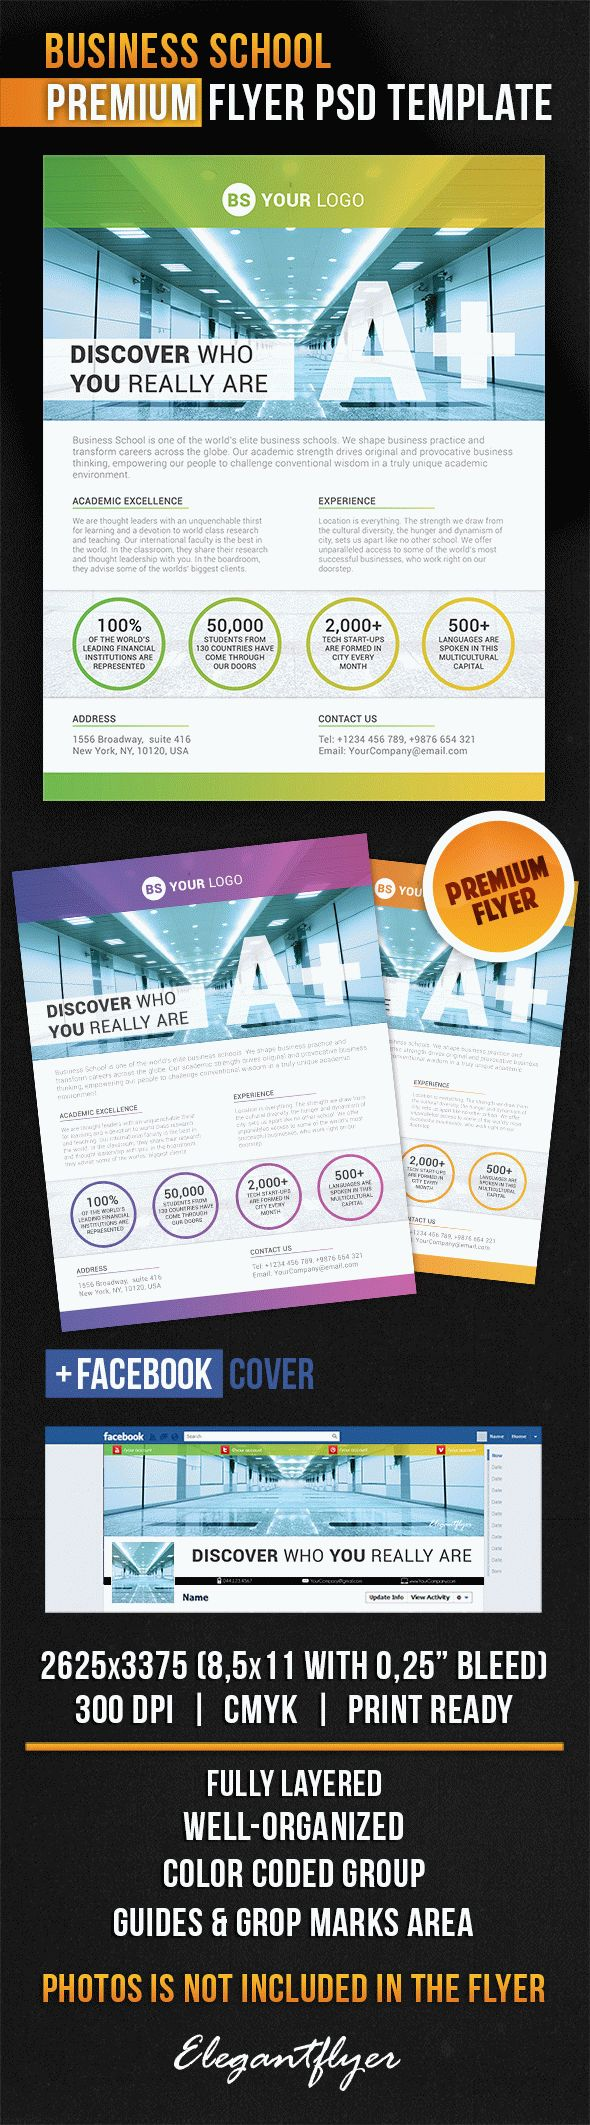 Business School Flyer PSD Template + Facebook Cover